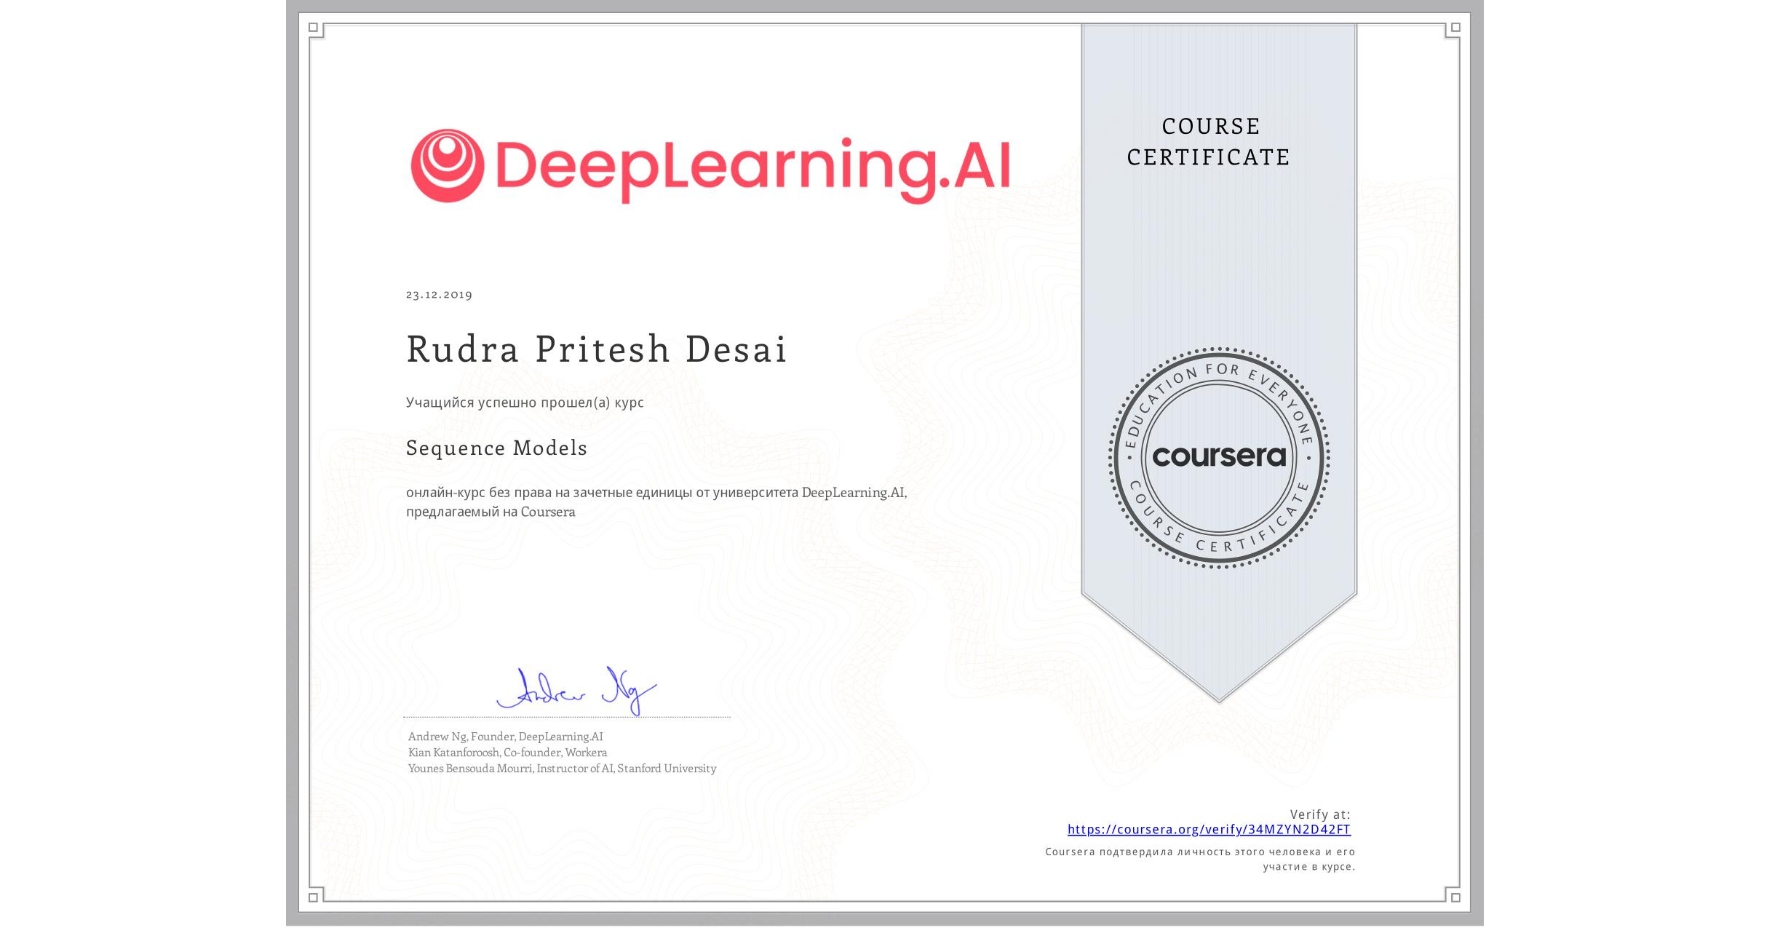 View certificate for Rudra Pritesh Desai, Sequence Models, an online non-credit course authorized by DeepLearning.AI and offered through Coursera